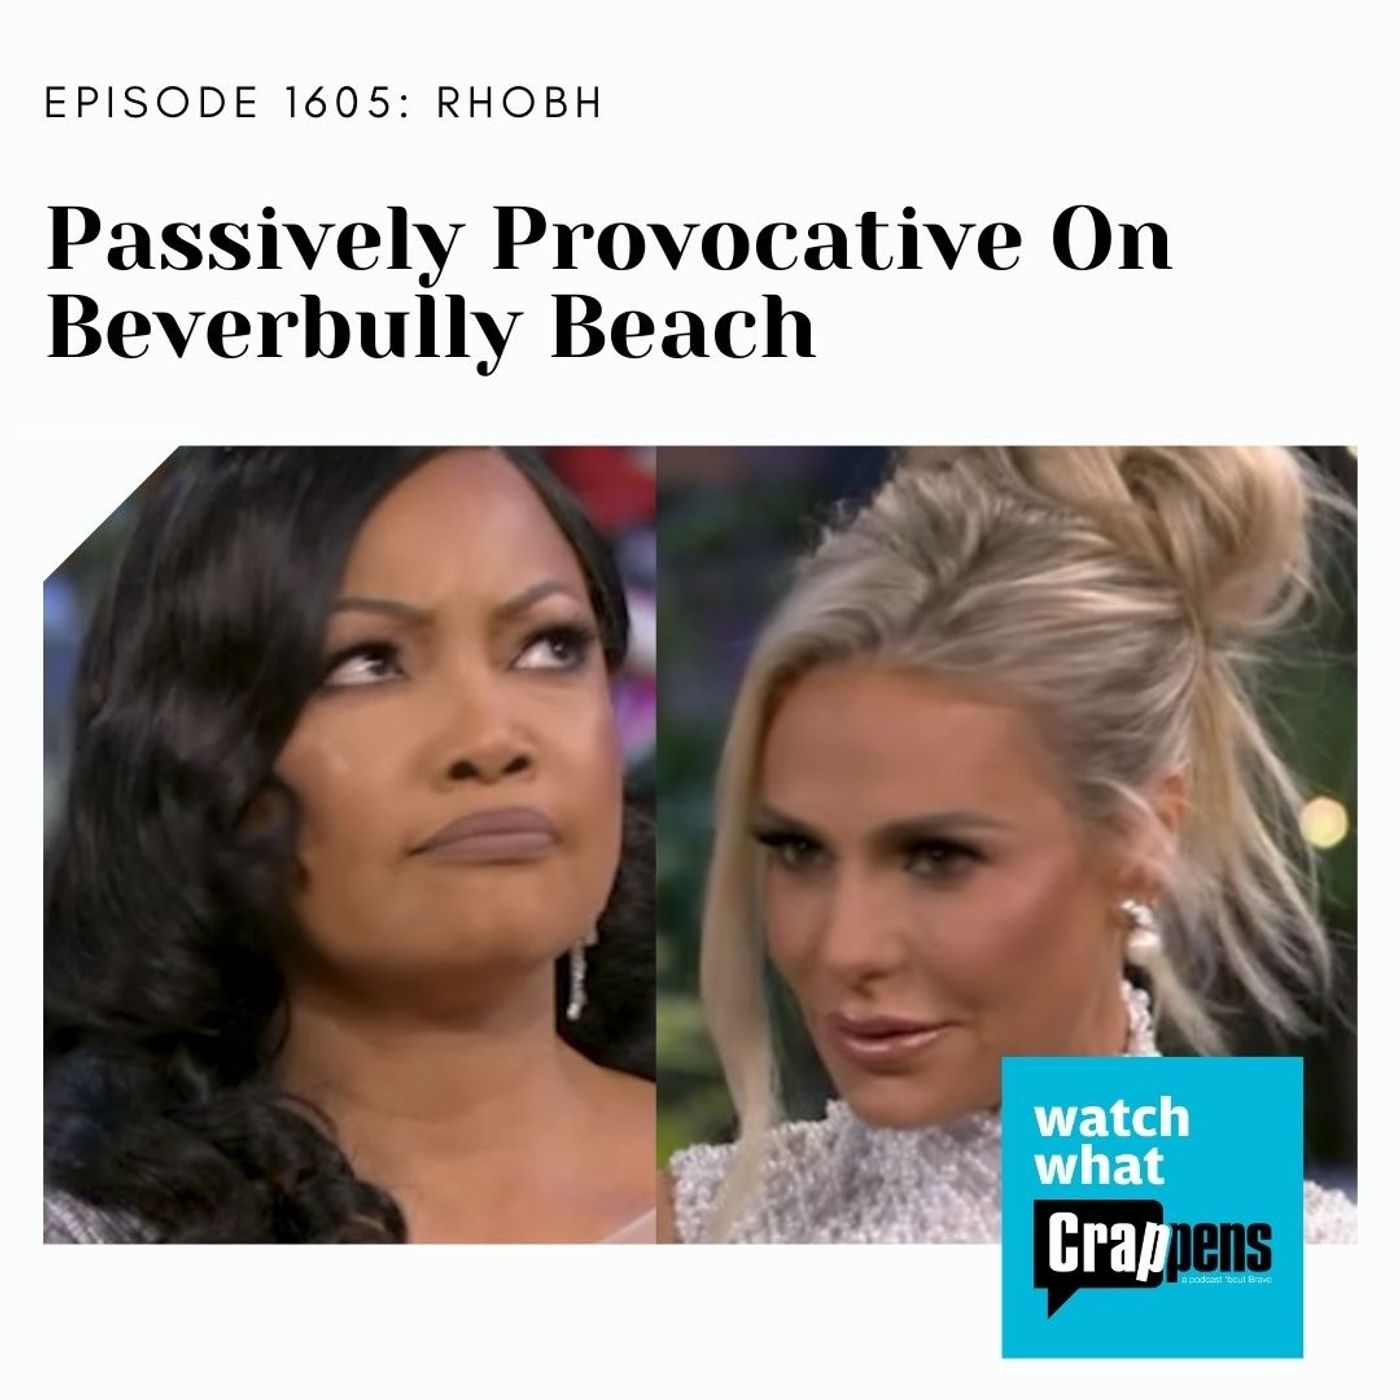 RHOBH: Passively Provocative On Beverbully Beach